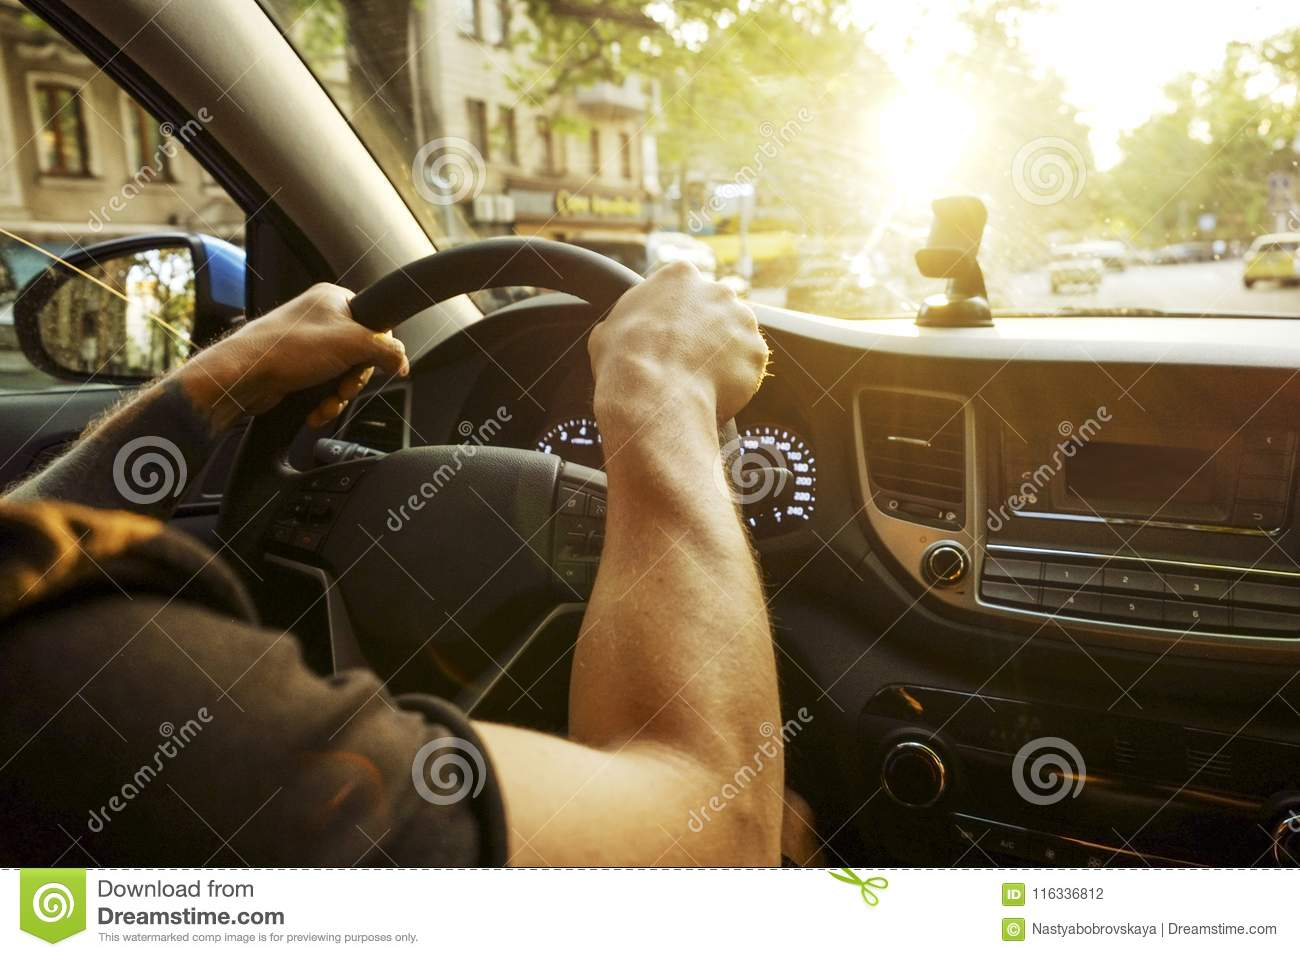 Car Interior With Male Driver Sitting Behind The Wheel, Soft